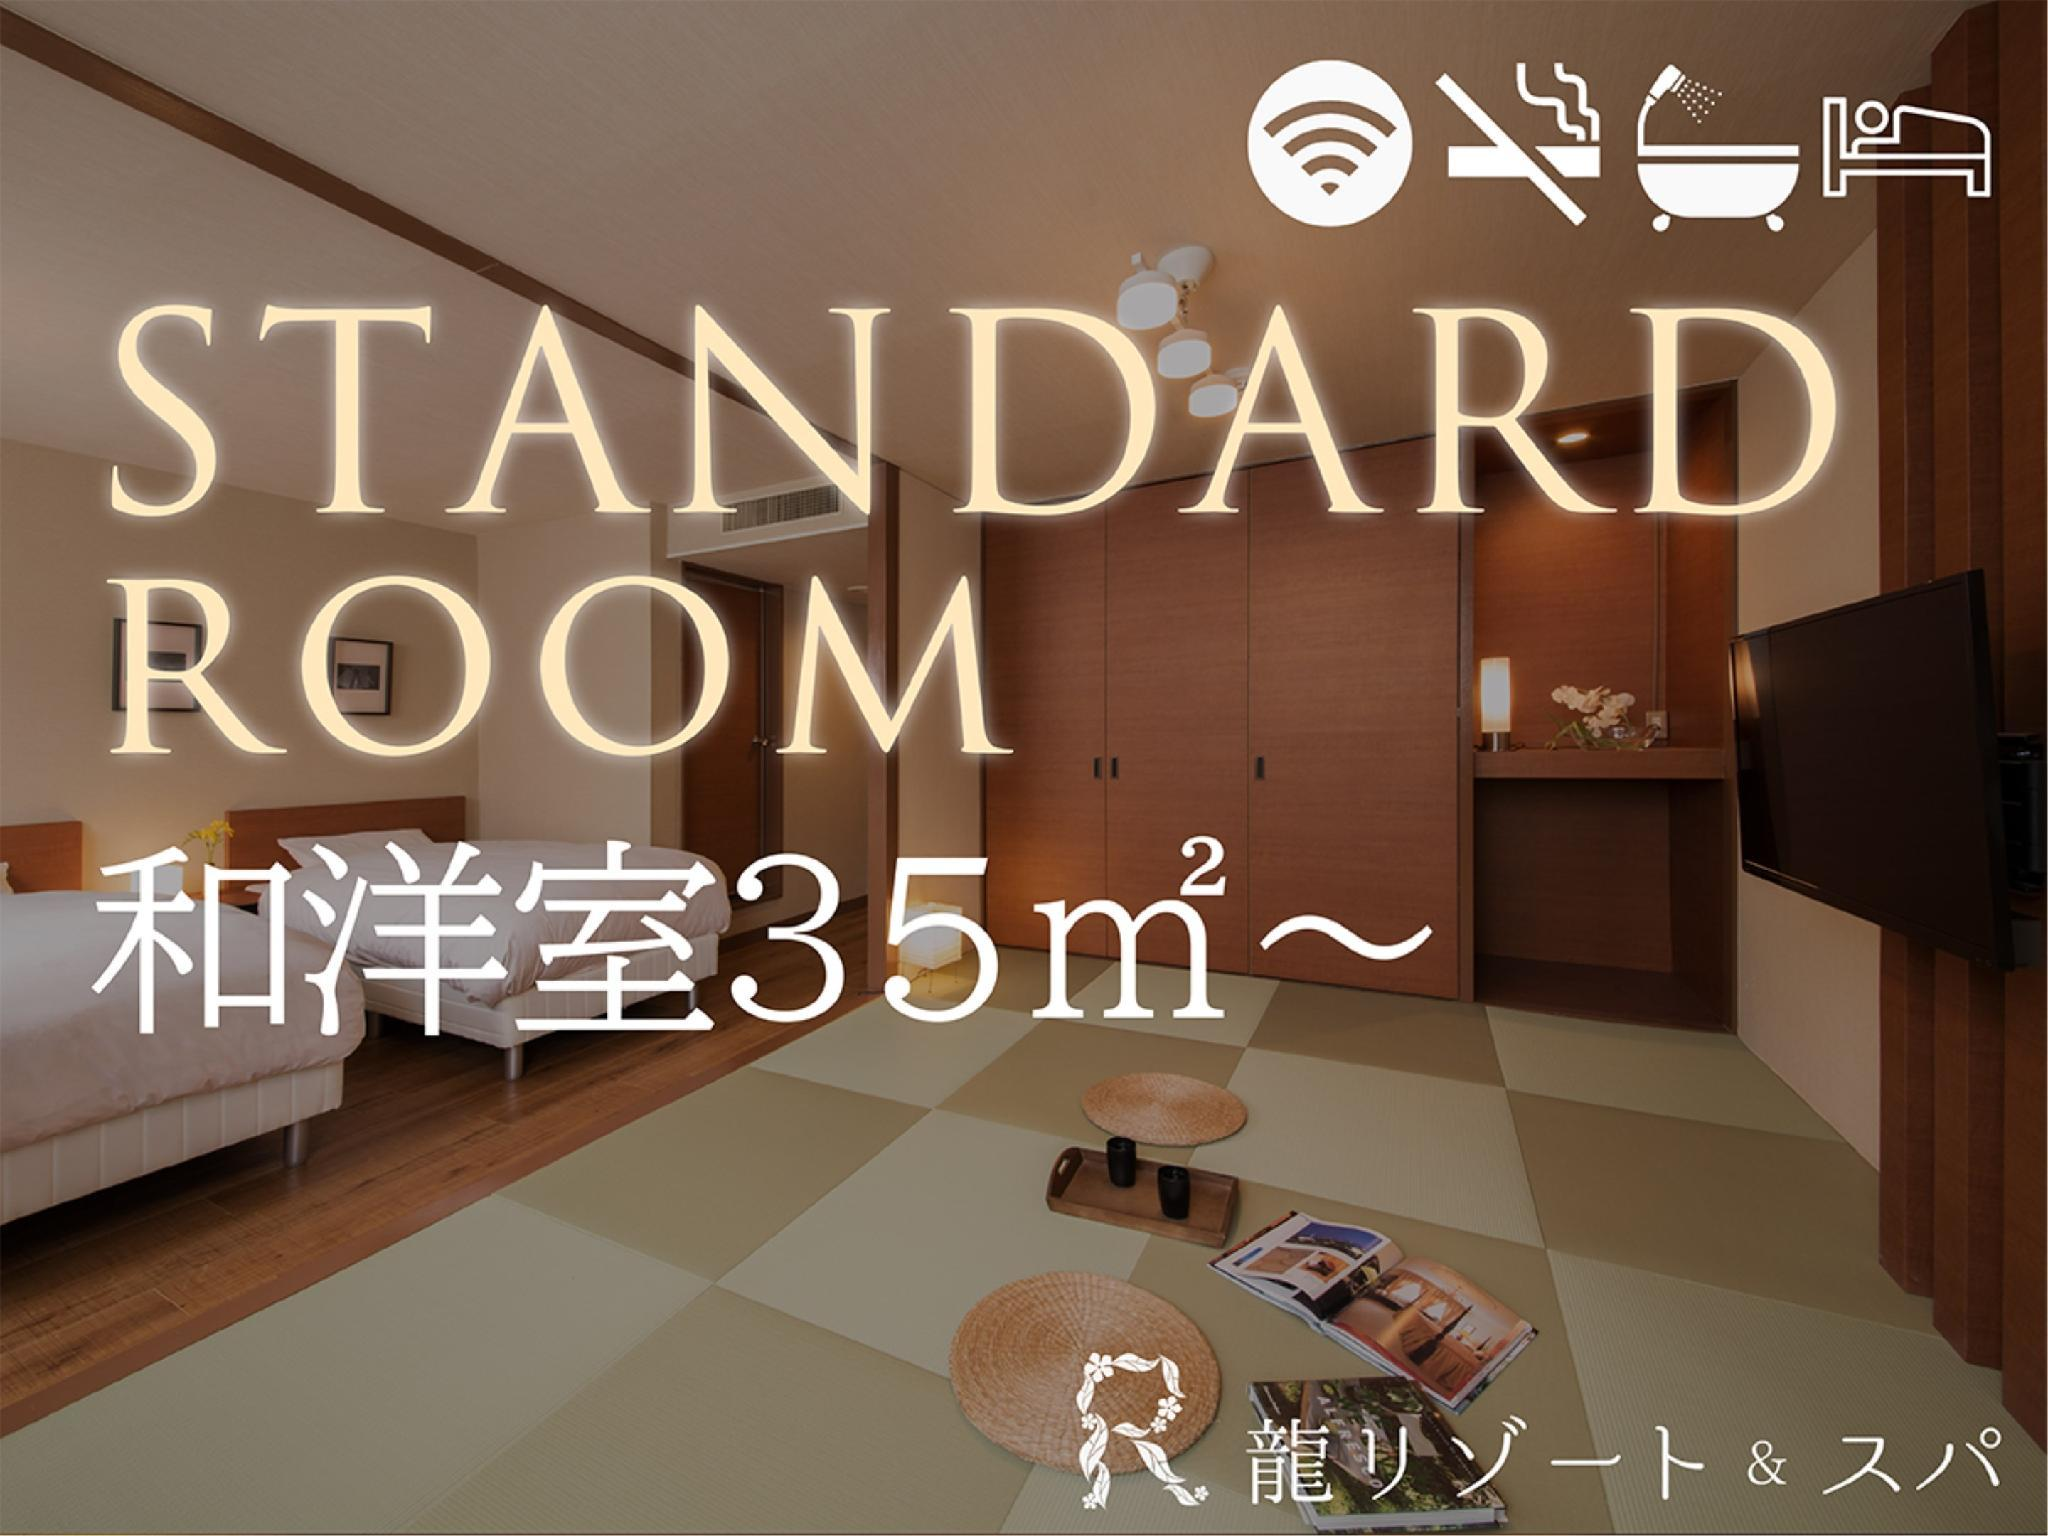 스탠다드 다다미 침대 객실 (Standard Japanese/Western-style Room *Allocated on arrival)